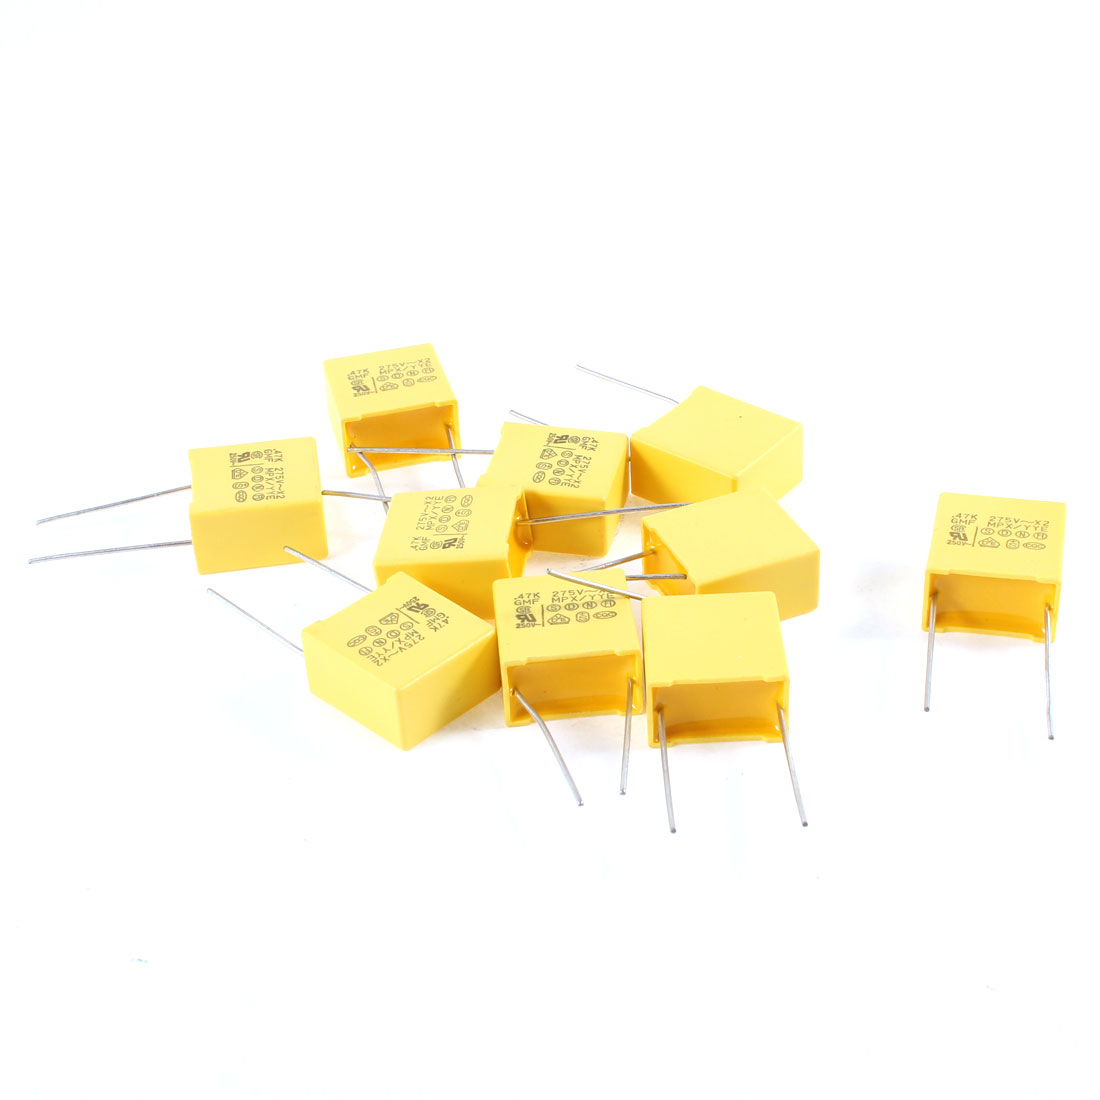 Yellow Rectangle Mylar Polyester Film Capacitors 0.47uF 275V 10% 10 Pcs